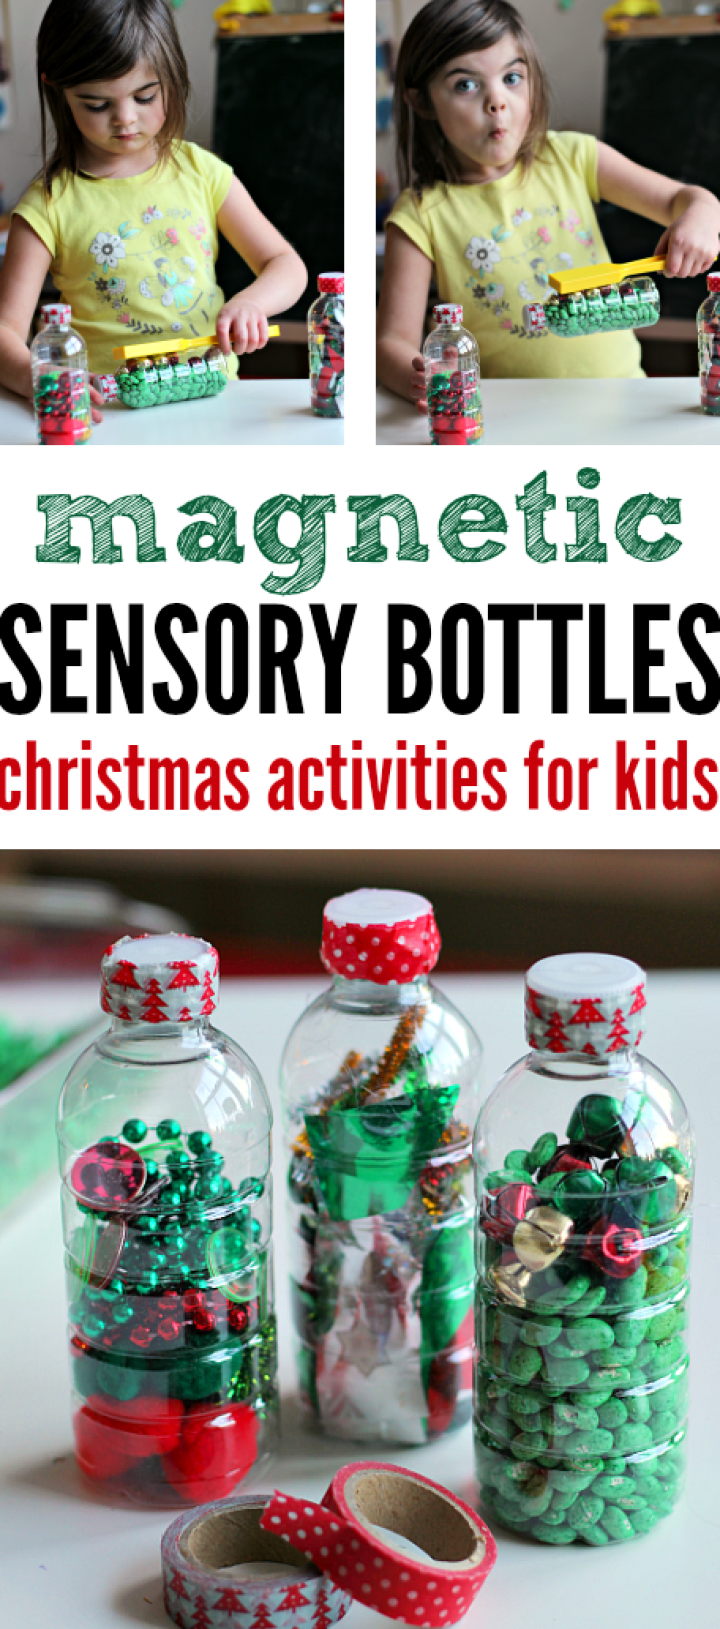 DIY Magnetic Sensory Bottles